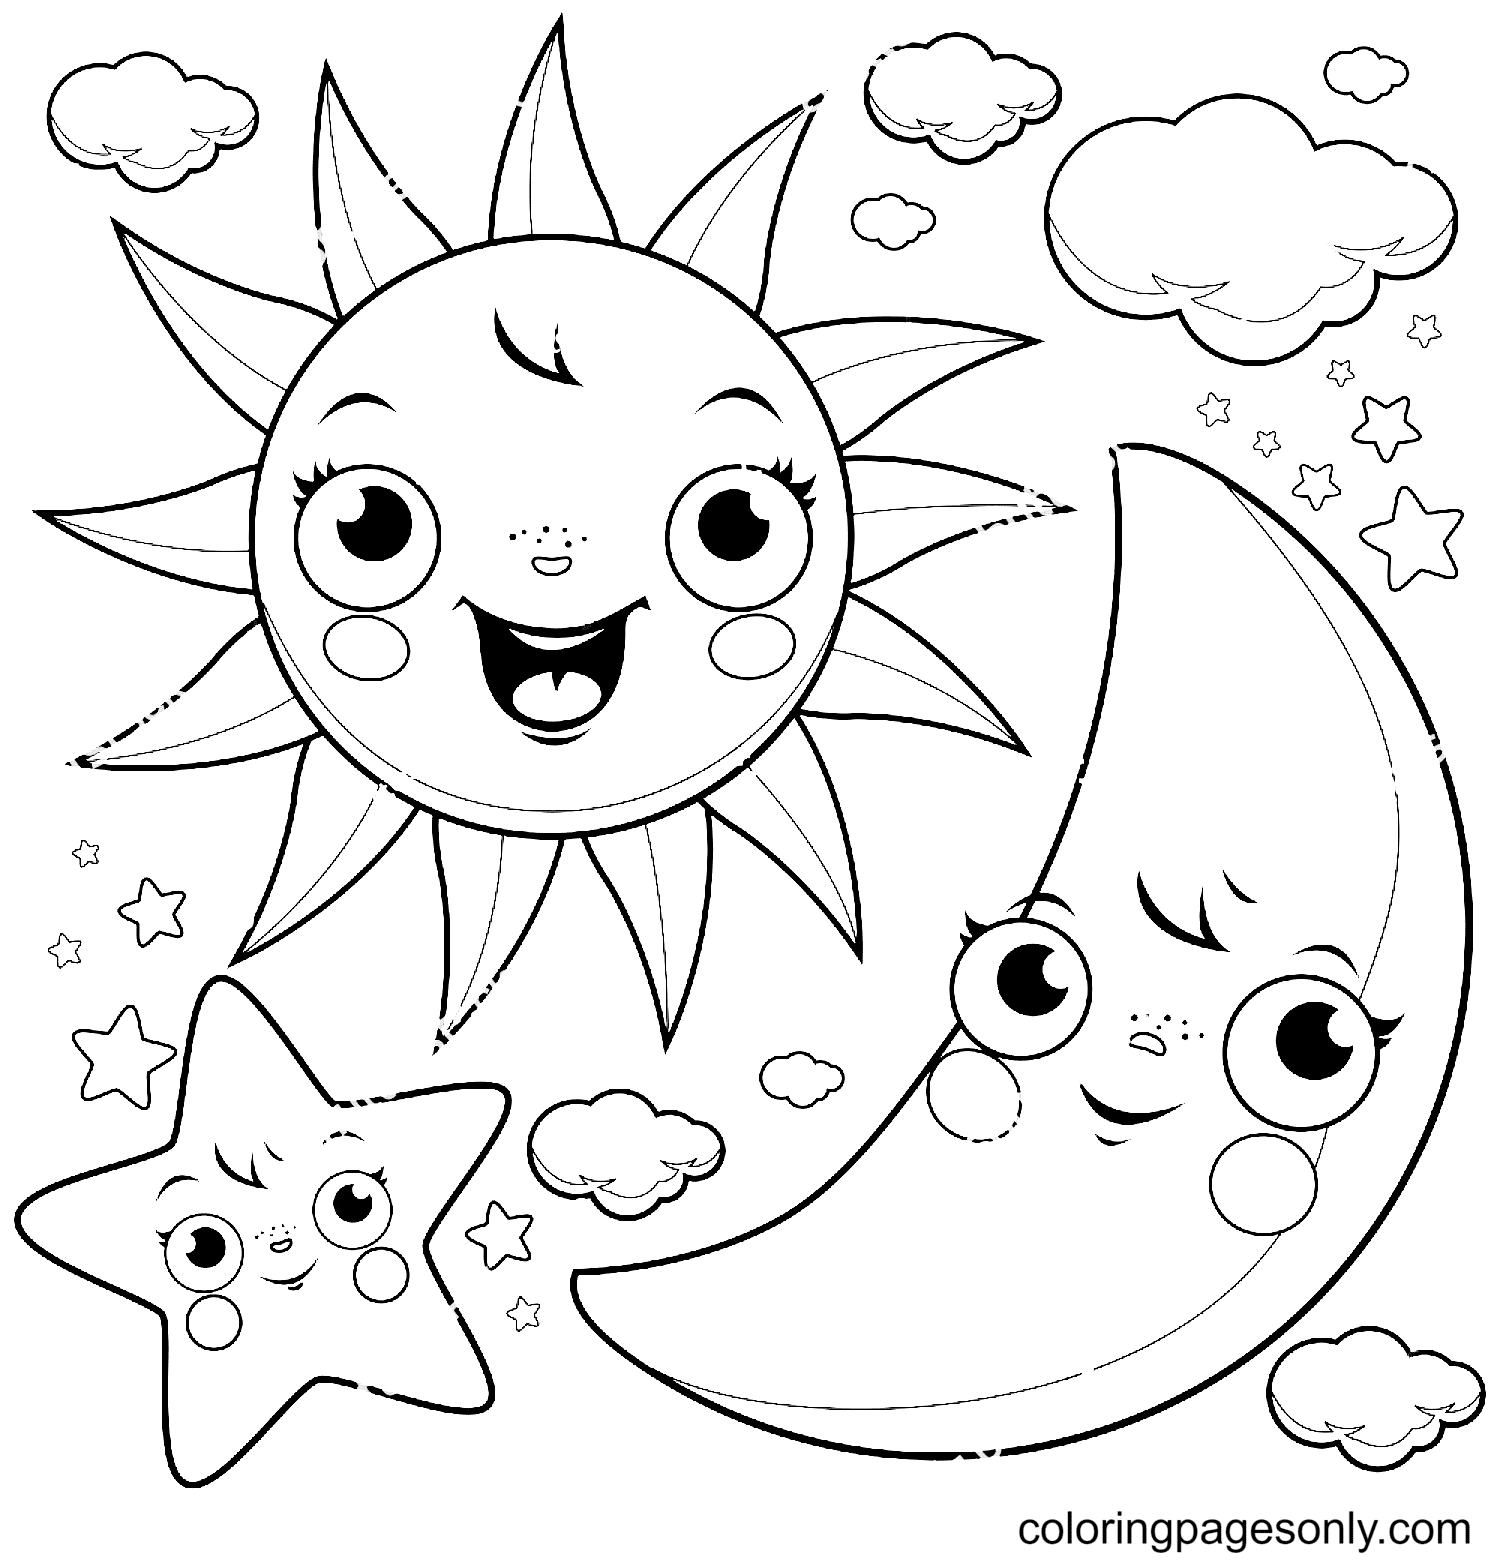 Cute Stars, Sun, Moon and Clouds Coloring Page